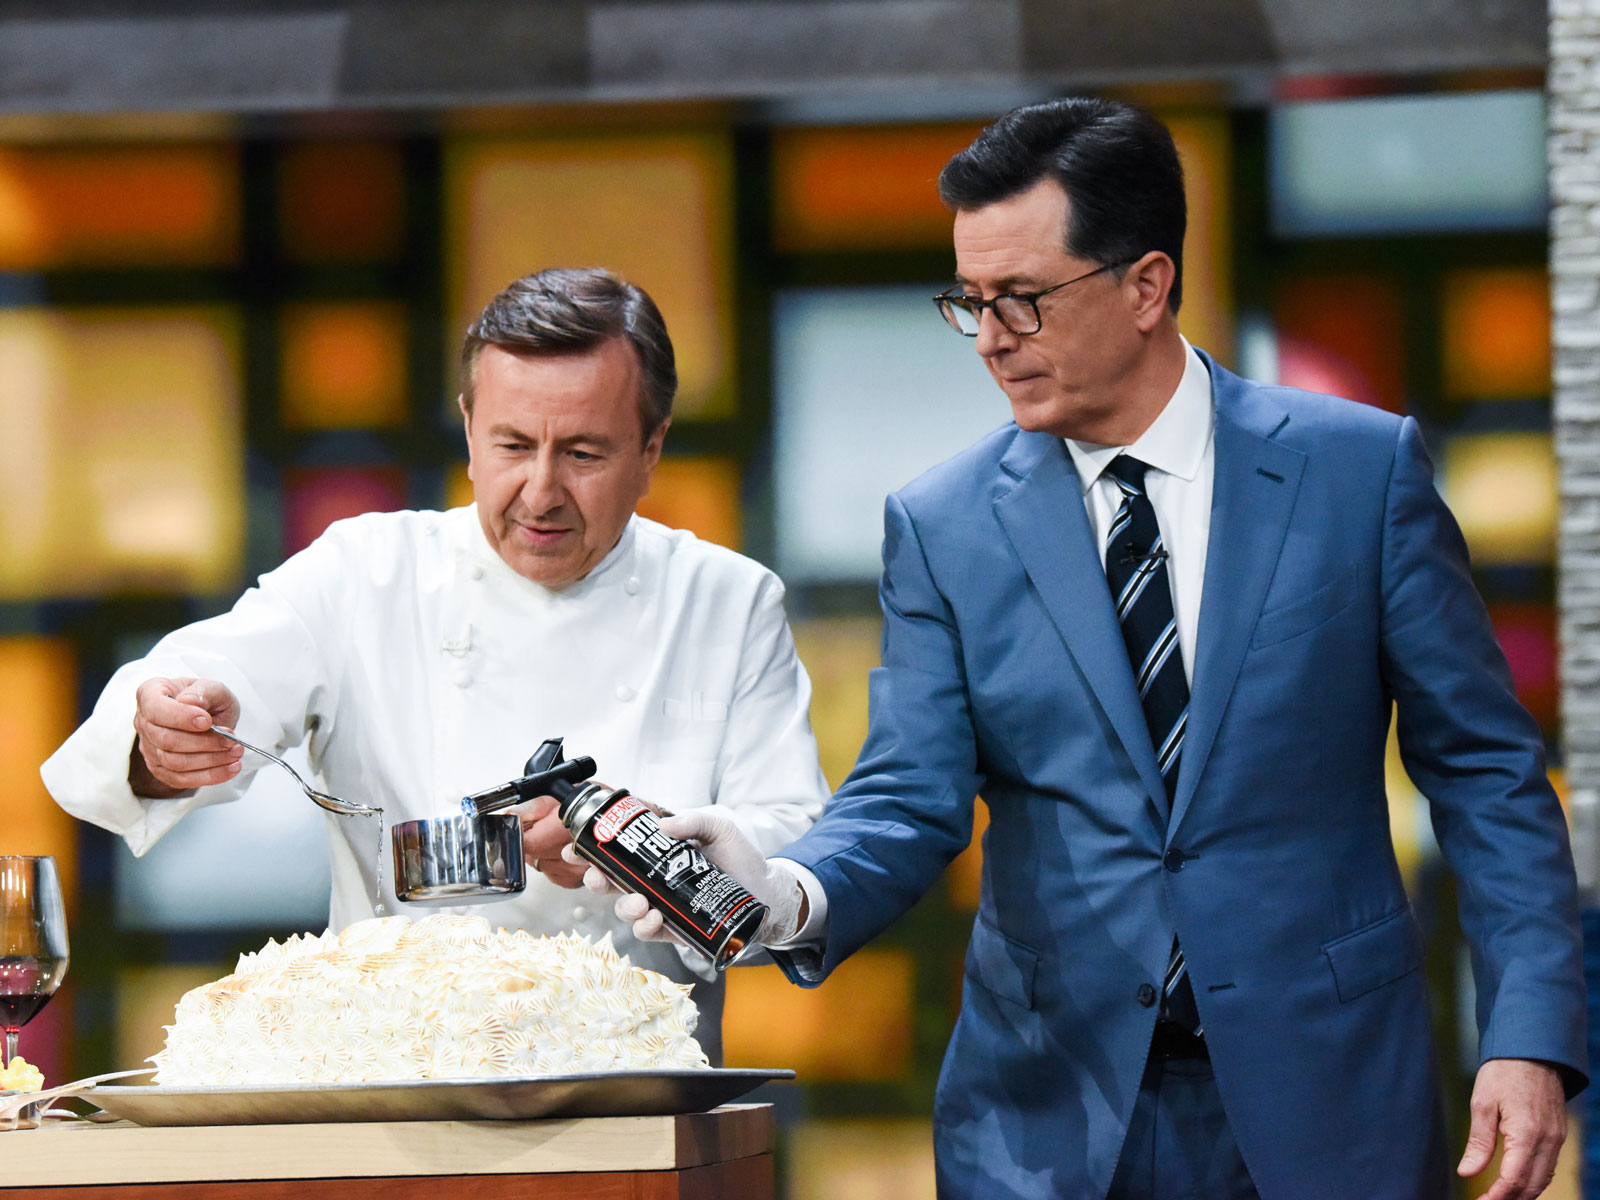 colbert-boulud-FT-BLOG0518.jpg